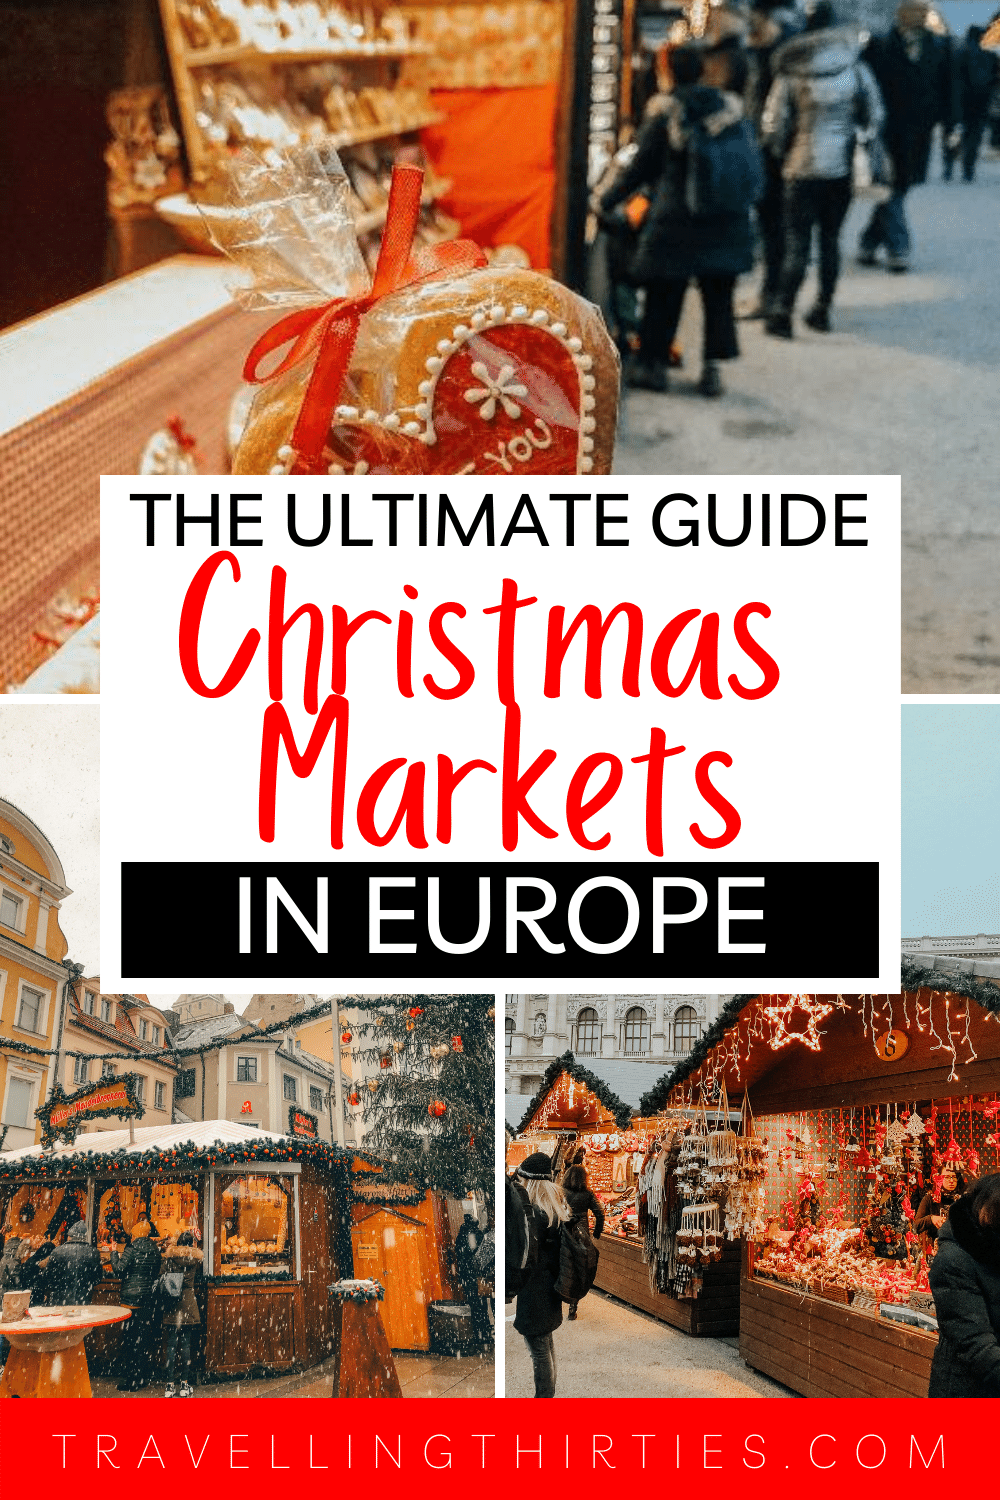 A pinterest graphic for a GUIDE FOR THE CHRISTMAS MARKETS IN EUROPE